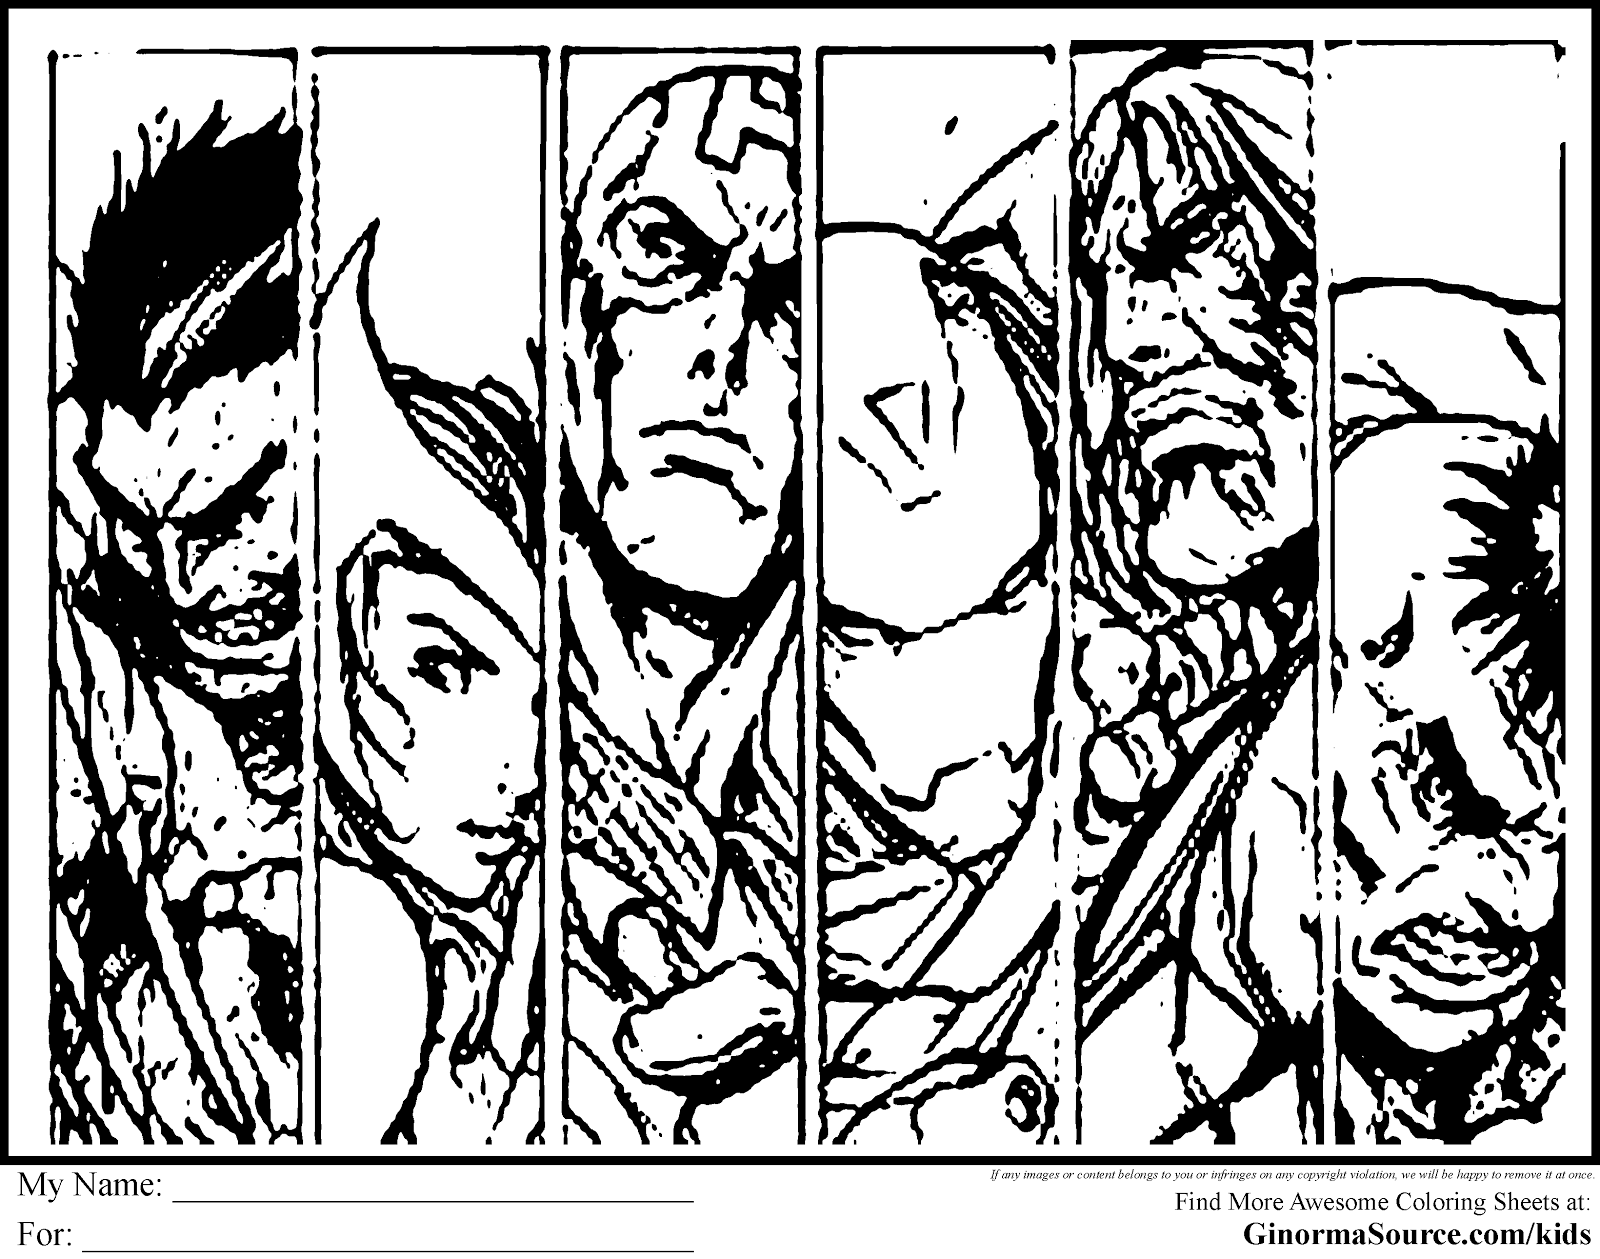 avengers coloring pages here is a collage of the faces and symbolism of the avengers - Comic Coloring Pages